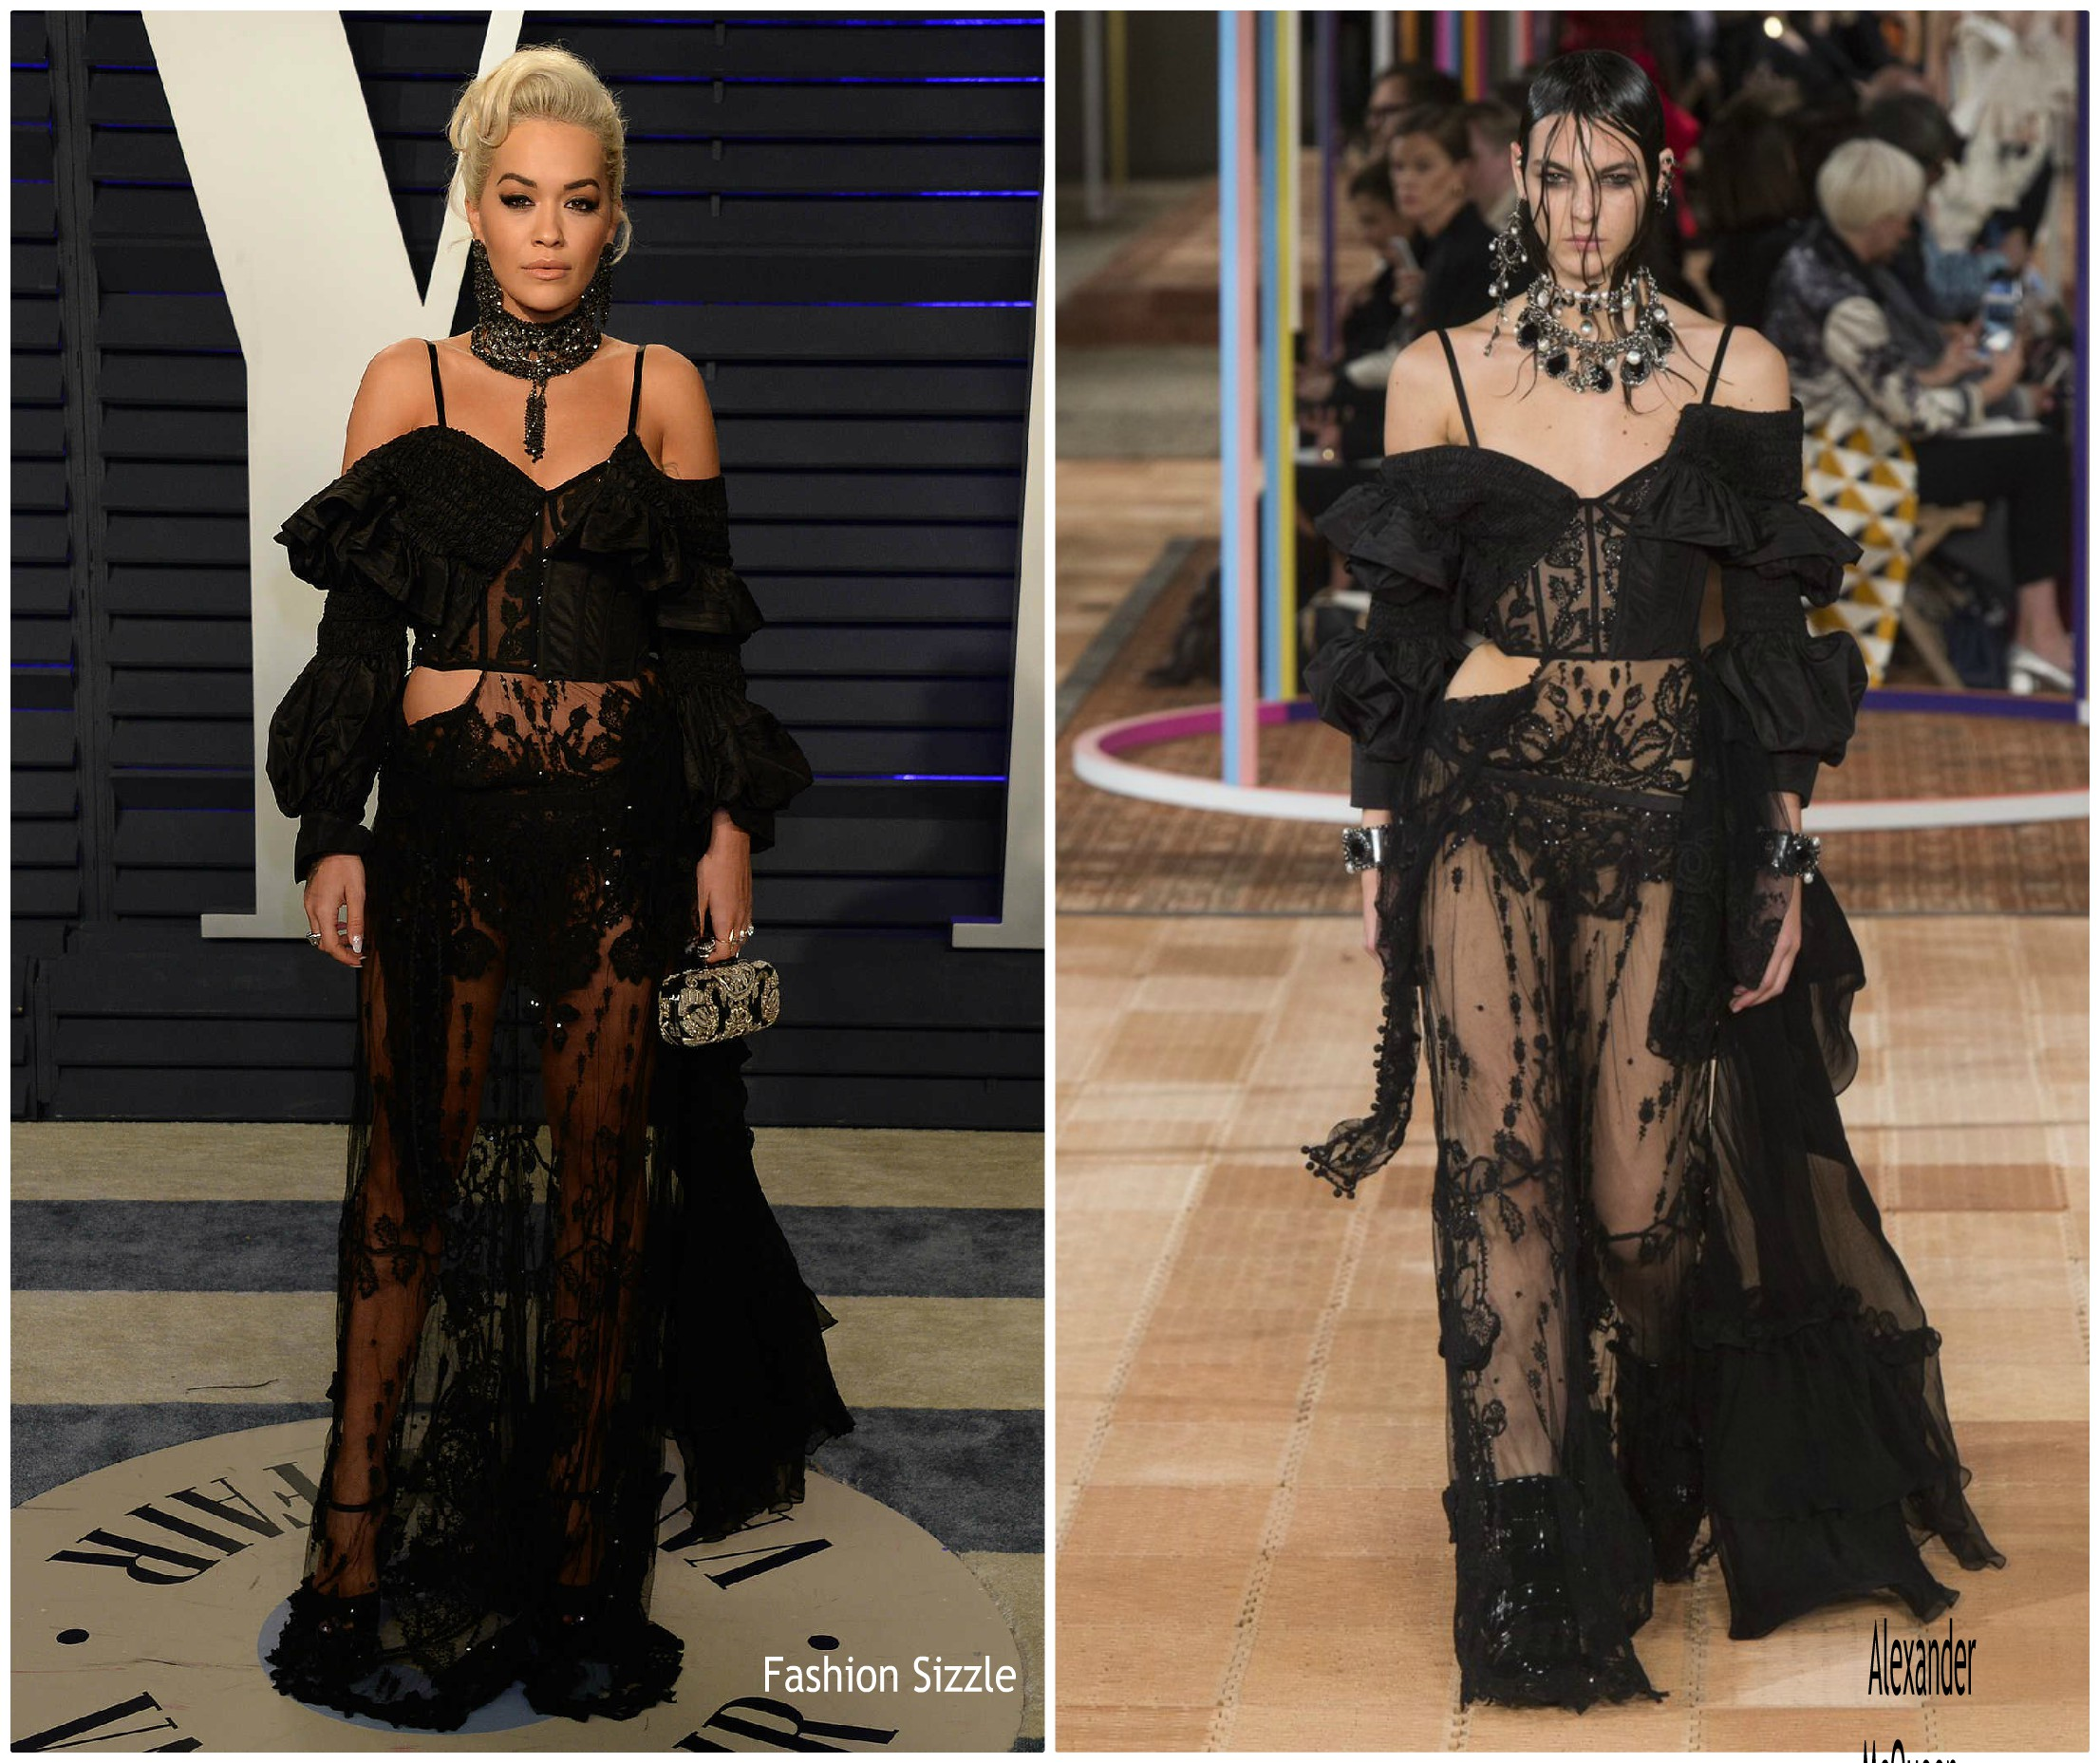 rita-ora-in-alexander-mcqueen-2019-vanity-fair-oscar-party